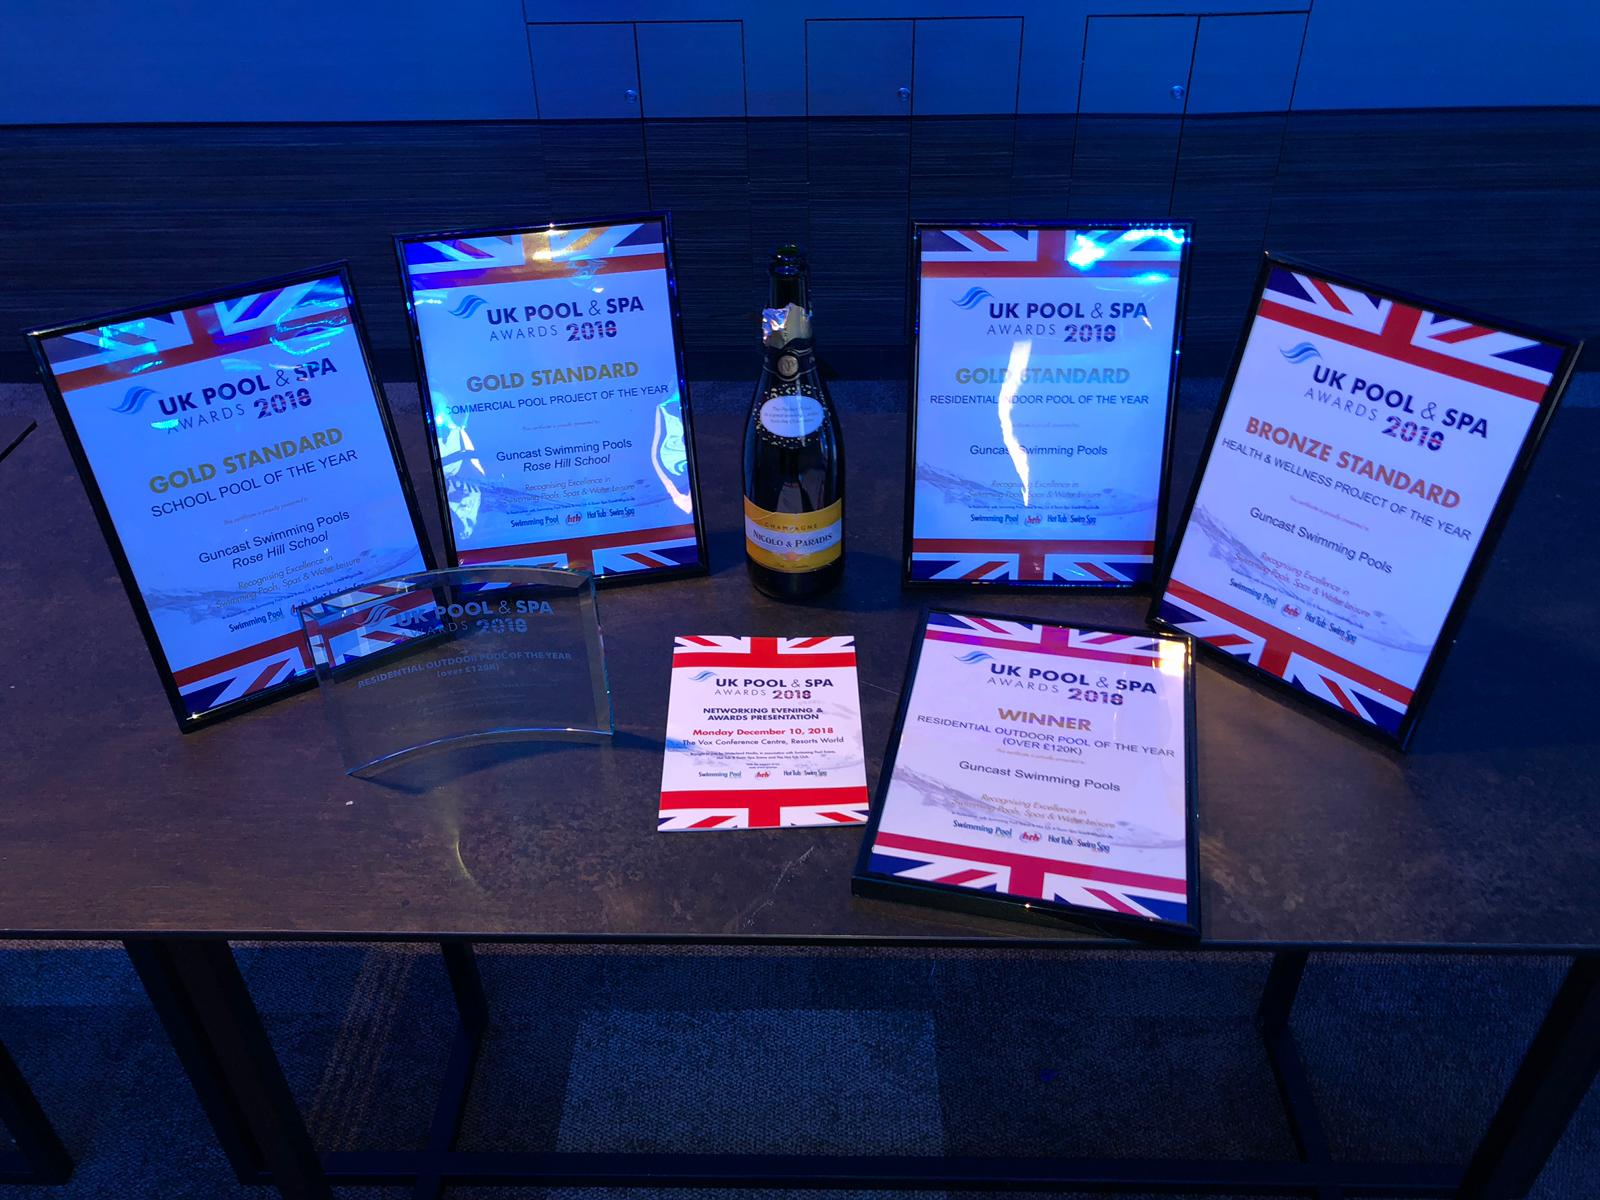 Guncast wins at the 2018 UK Pool & Spa Awards